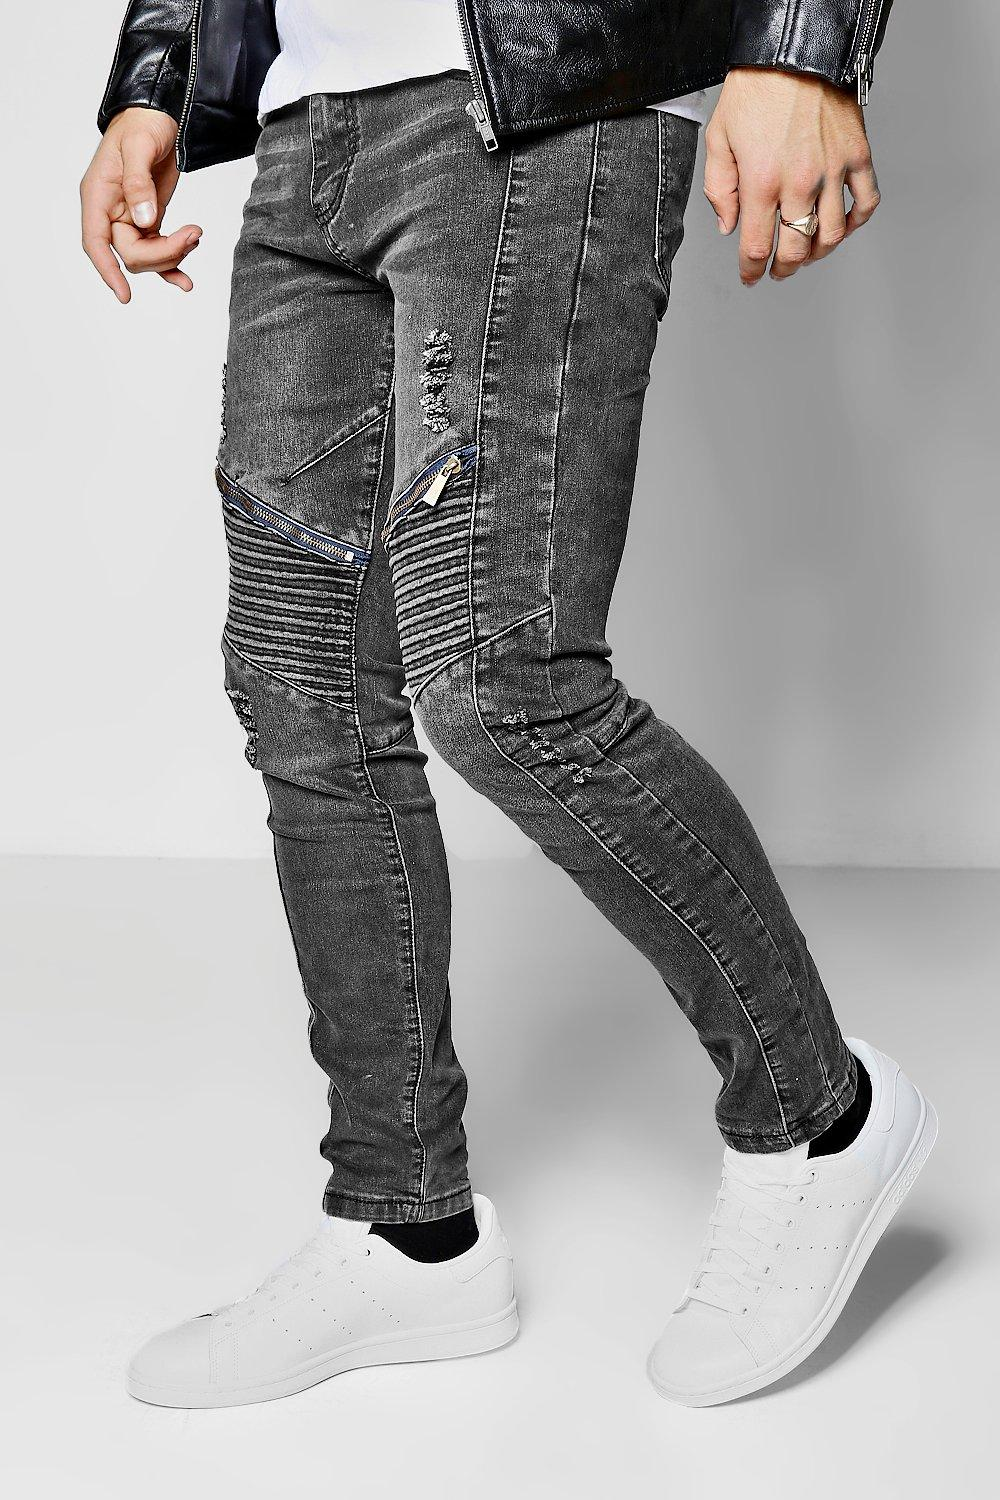 COAL BIKER DENIM